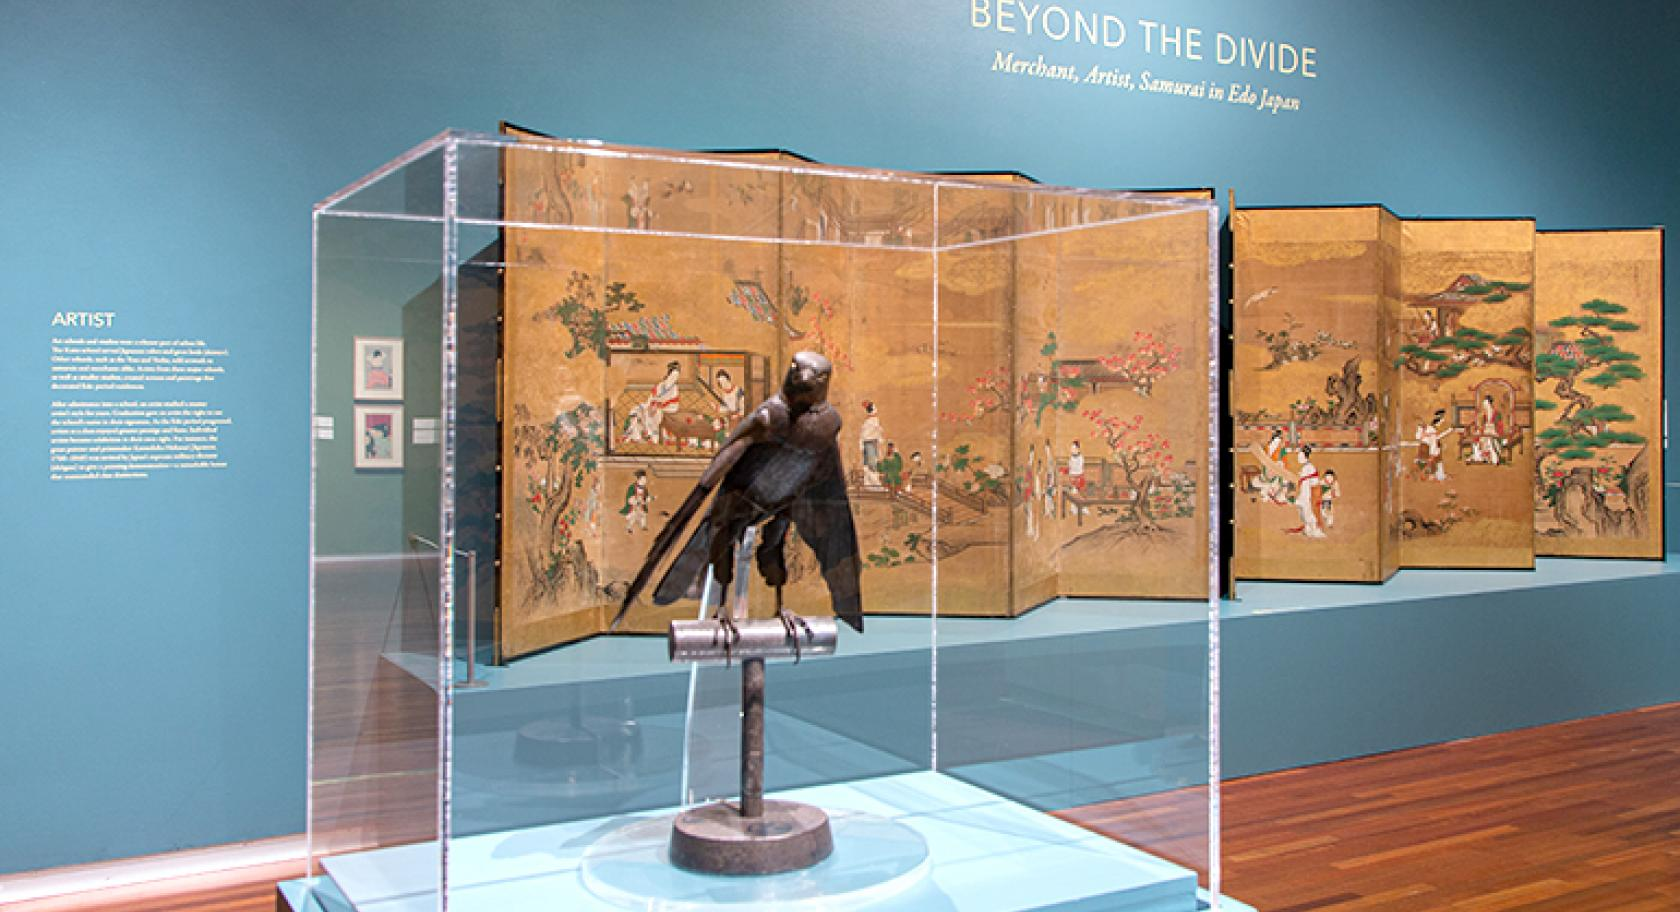 Beyond the Divide gallery, Articulated Raptor in front of Four Scholarly Arts screen